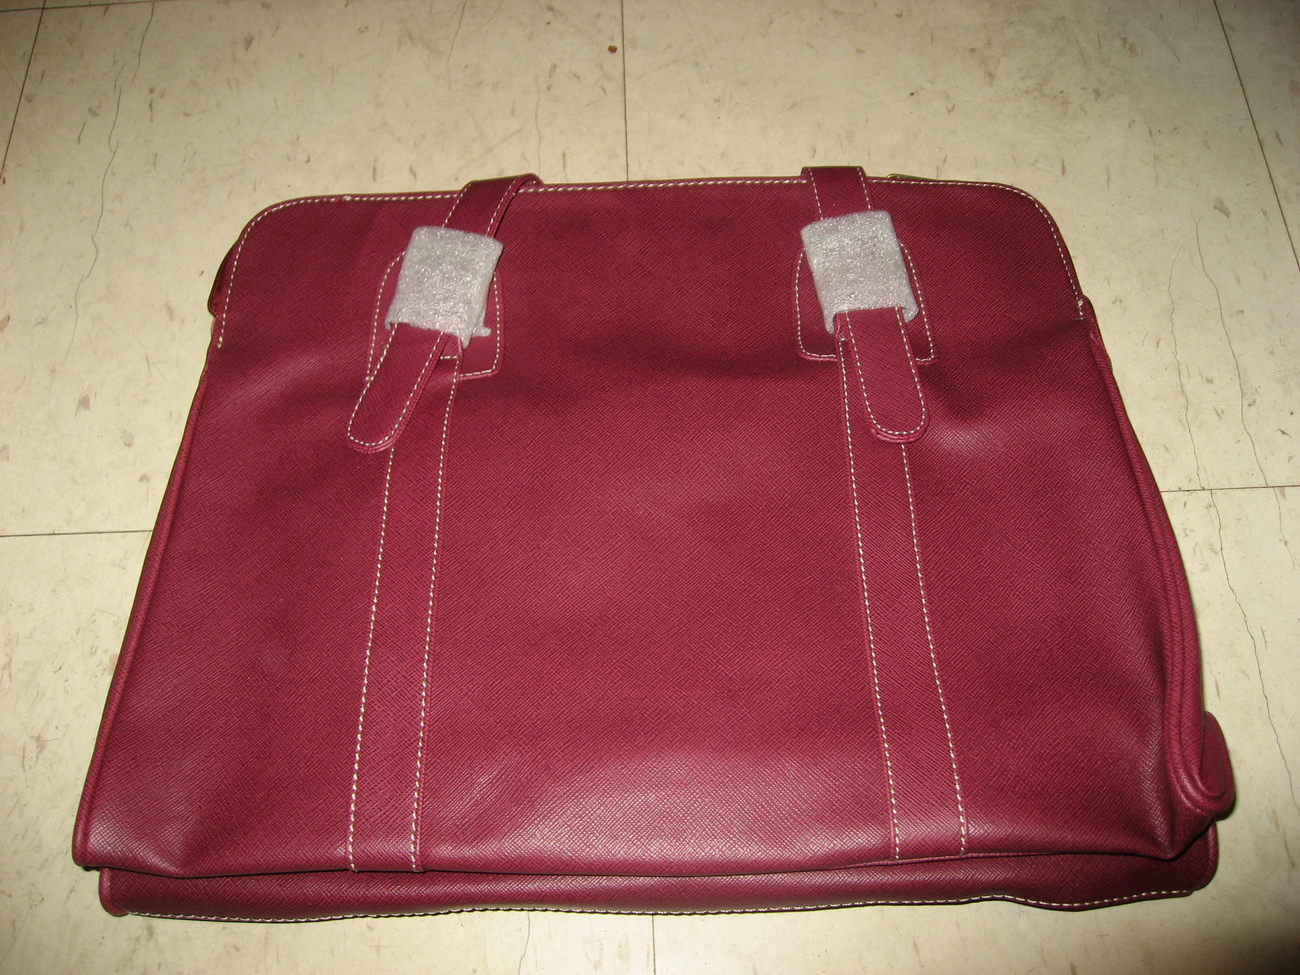 Estee lauder red leather handbag